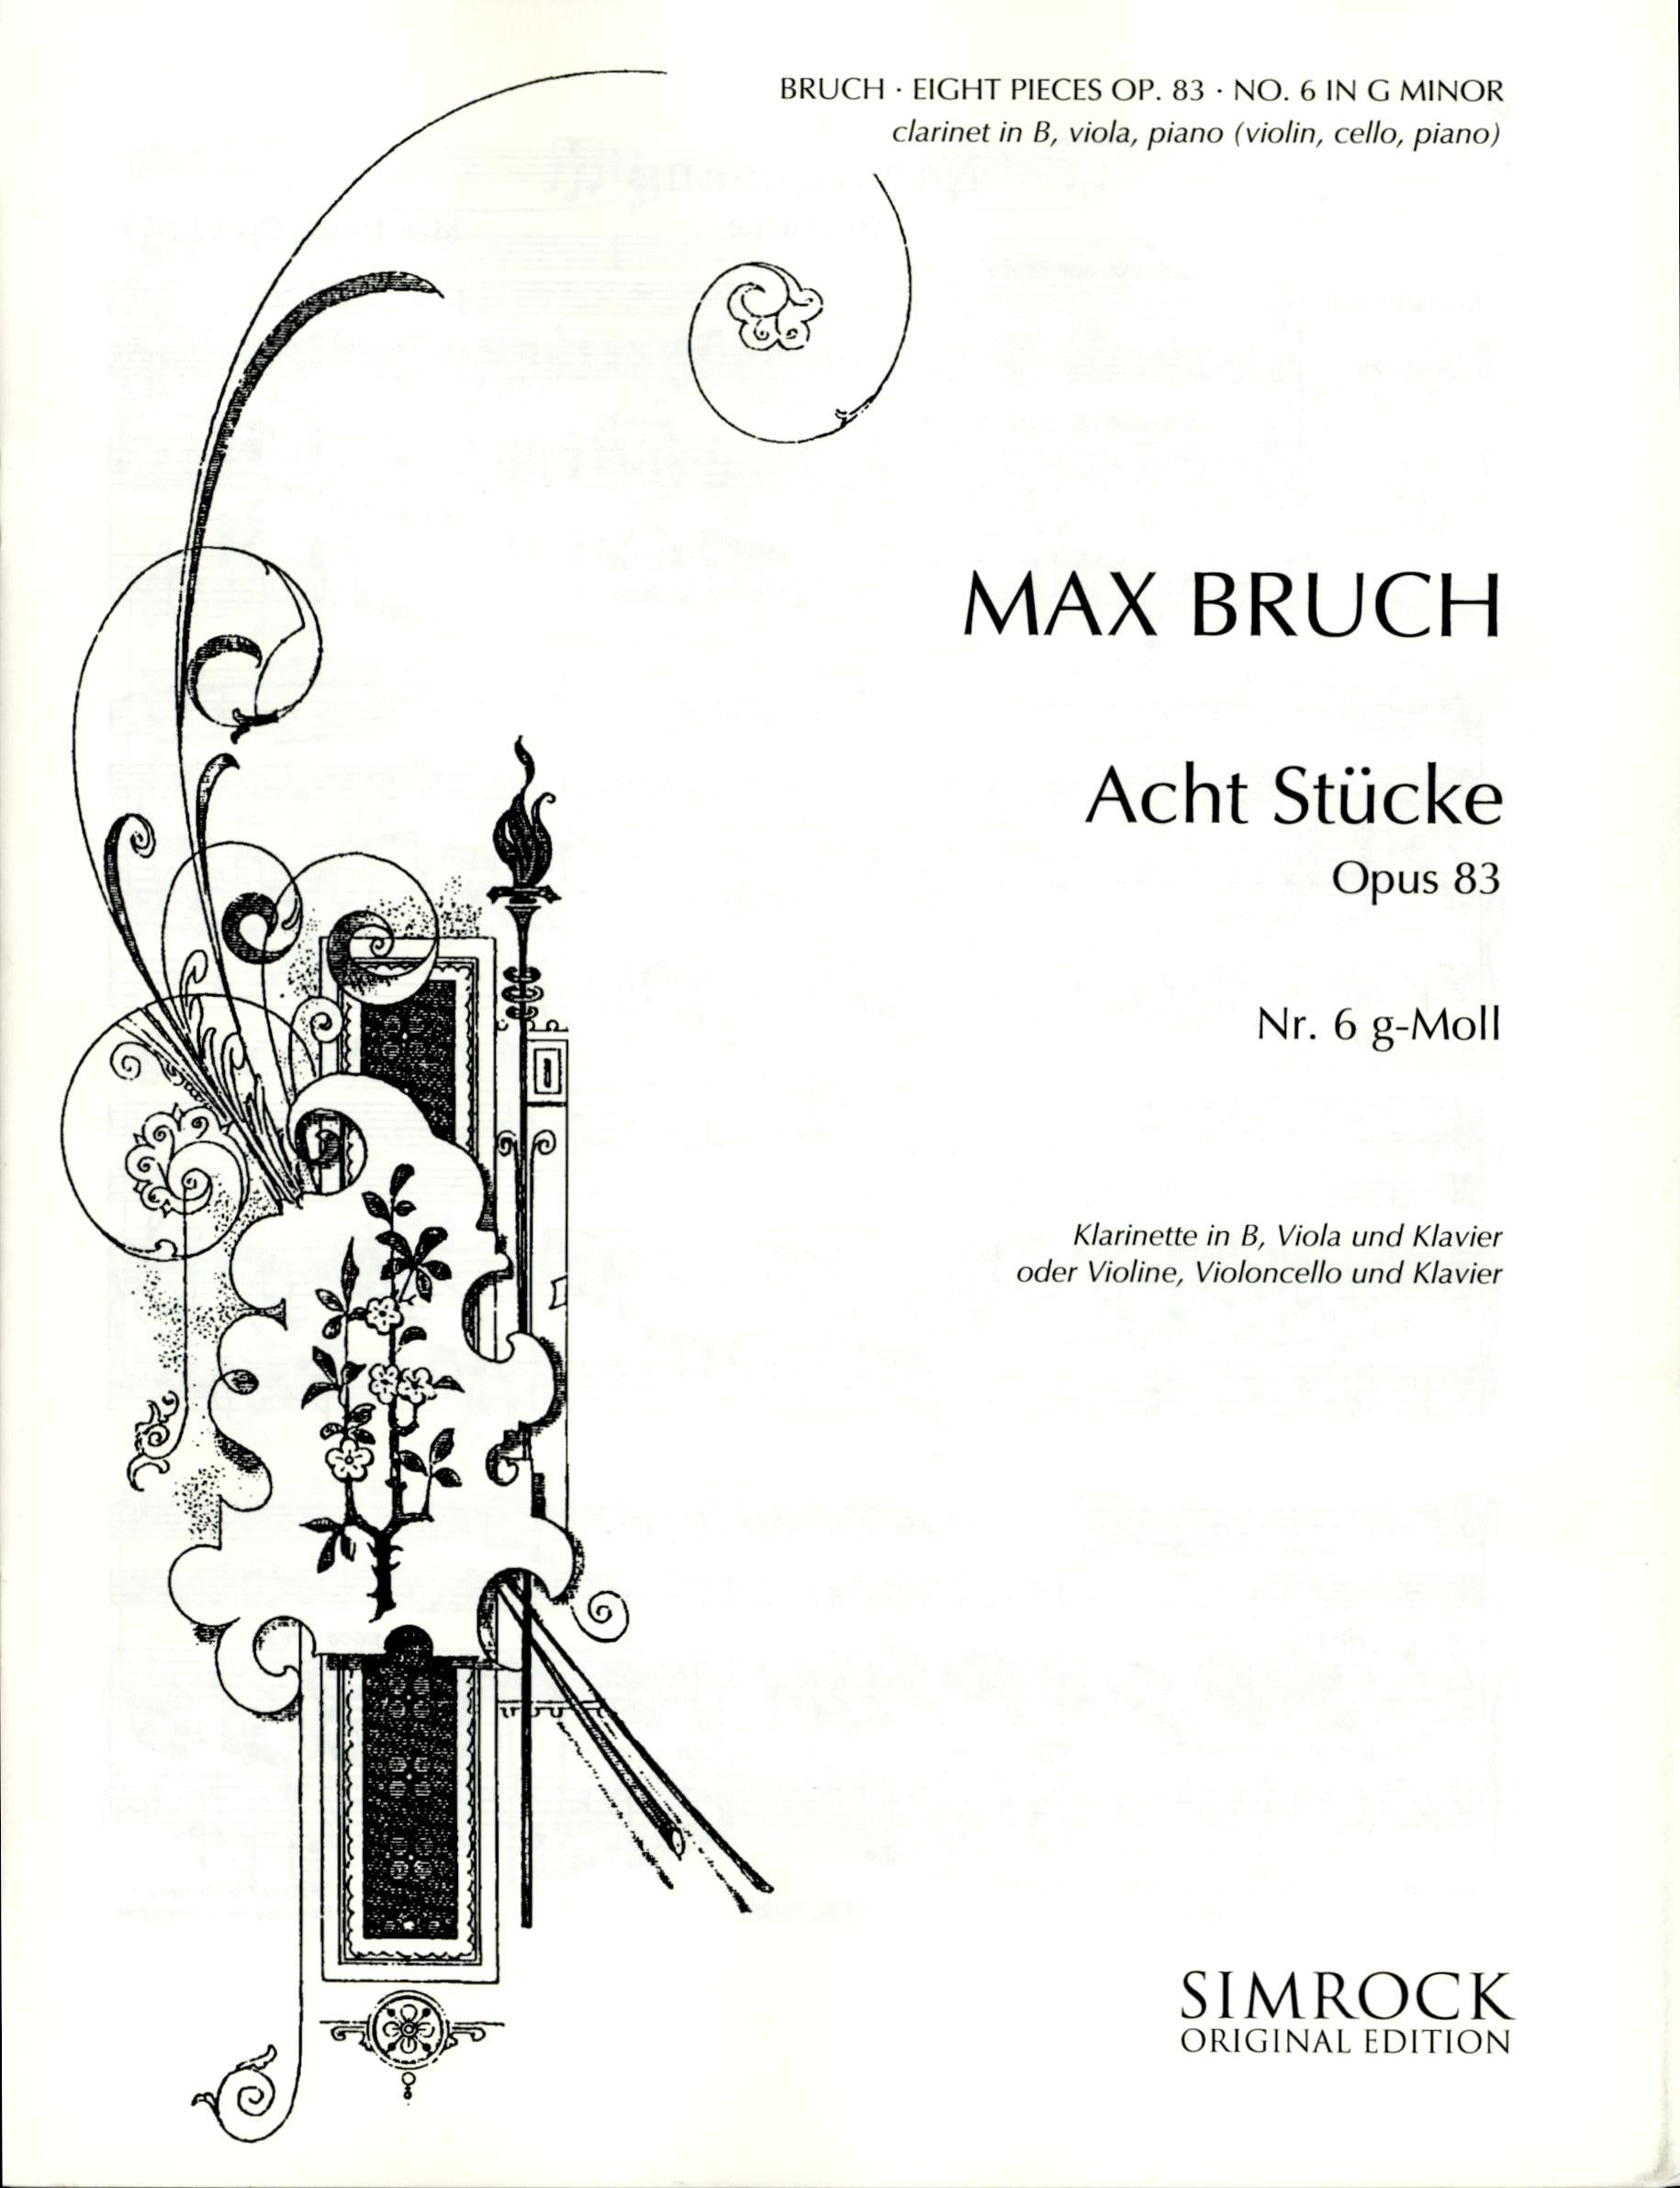 Bruch: Eight Pieces, Op. 83, No. 6